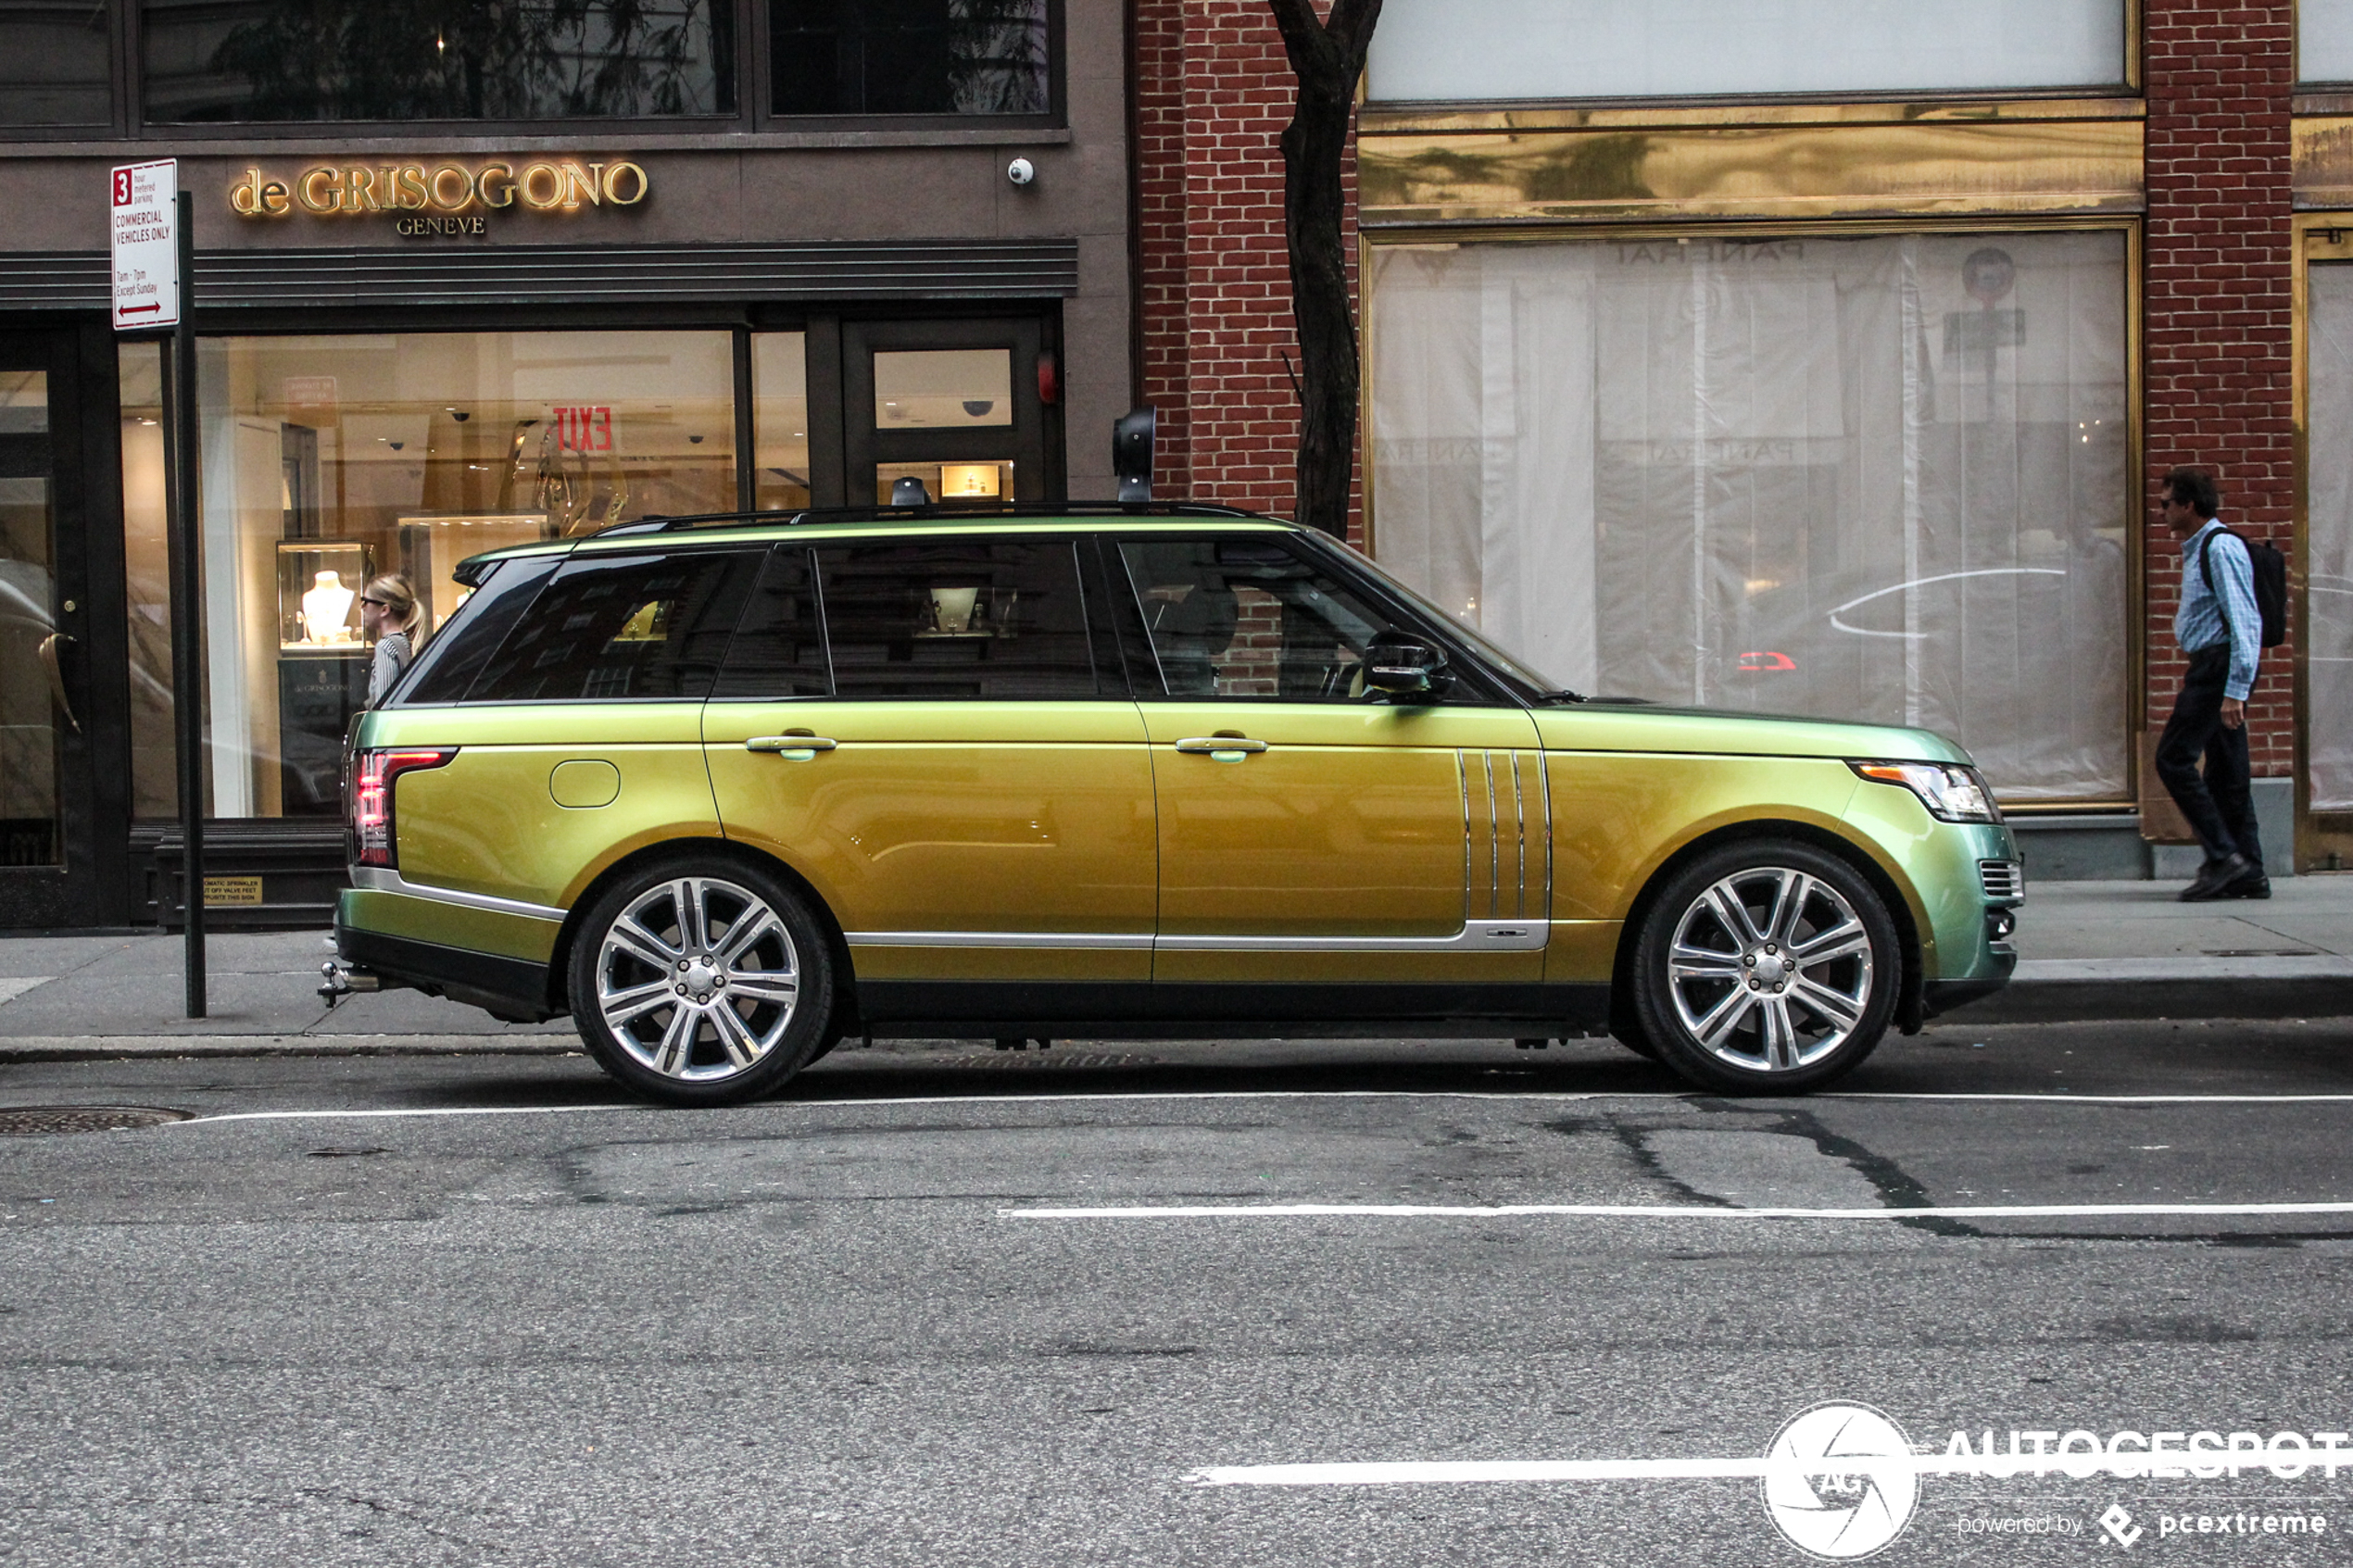 A house on wheels: Land rover Range Rover SVAutobiography LWB